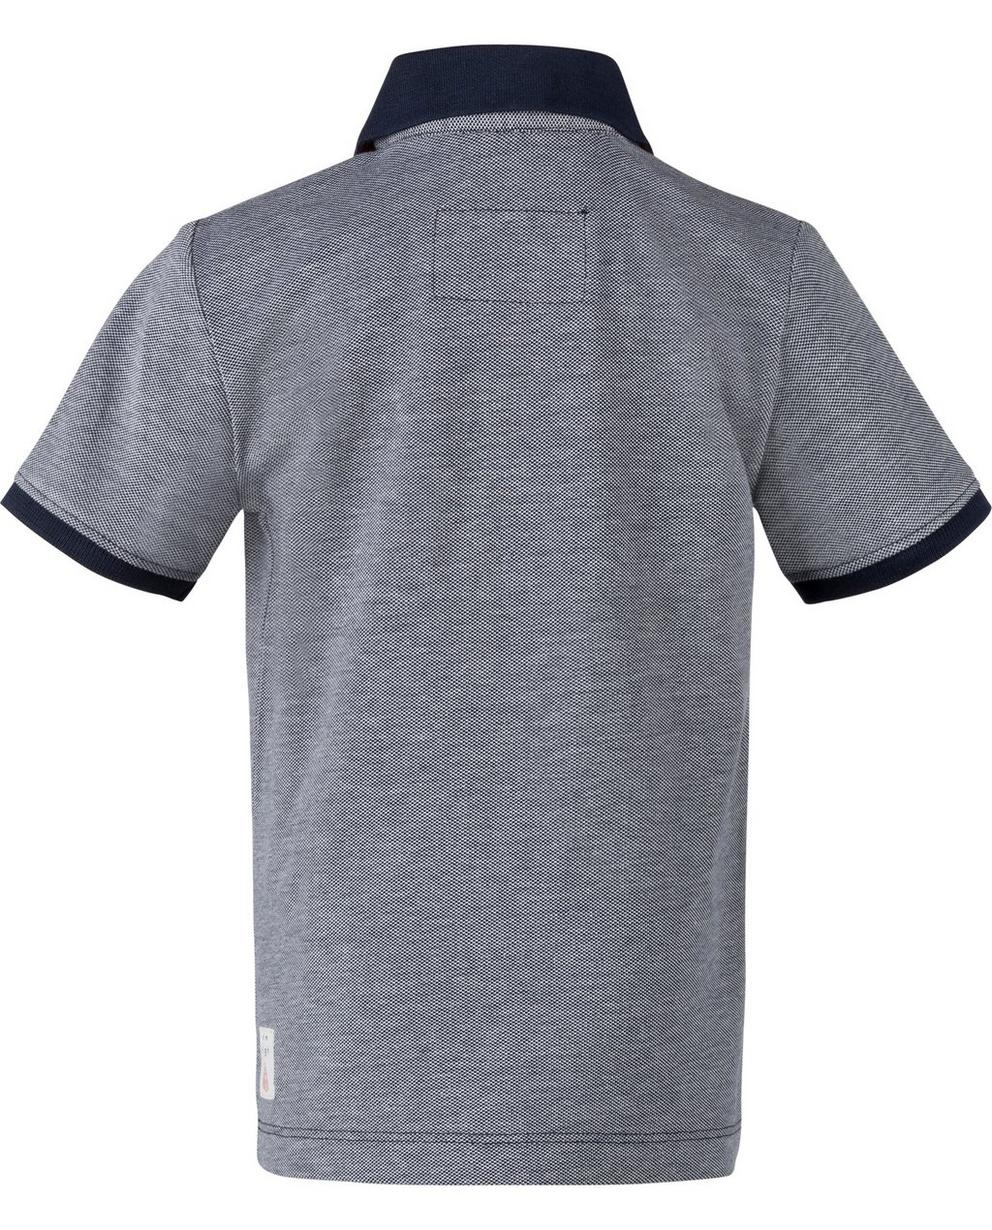 Polos - Navy - Polo met patch